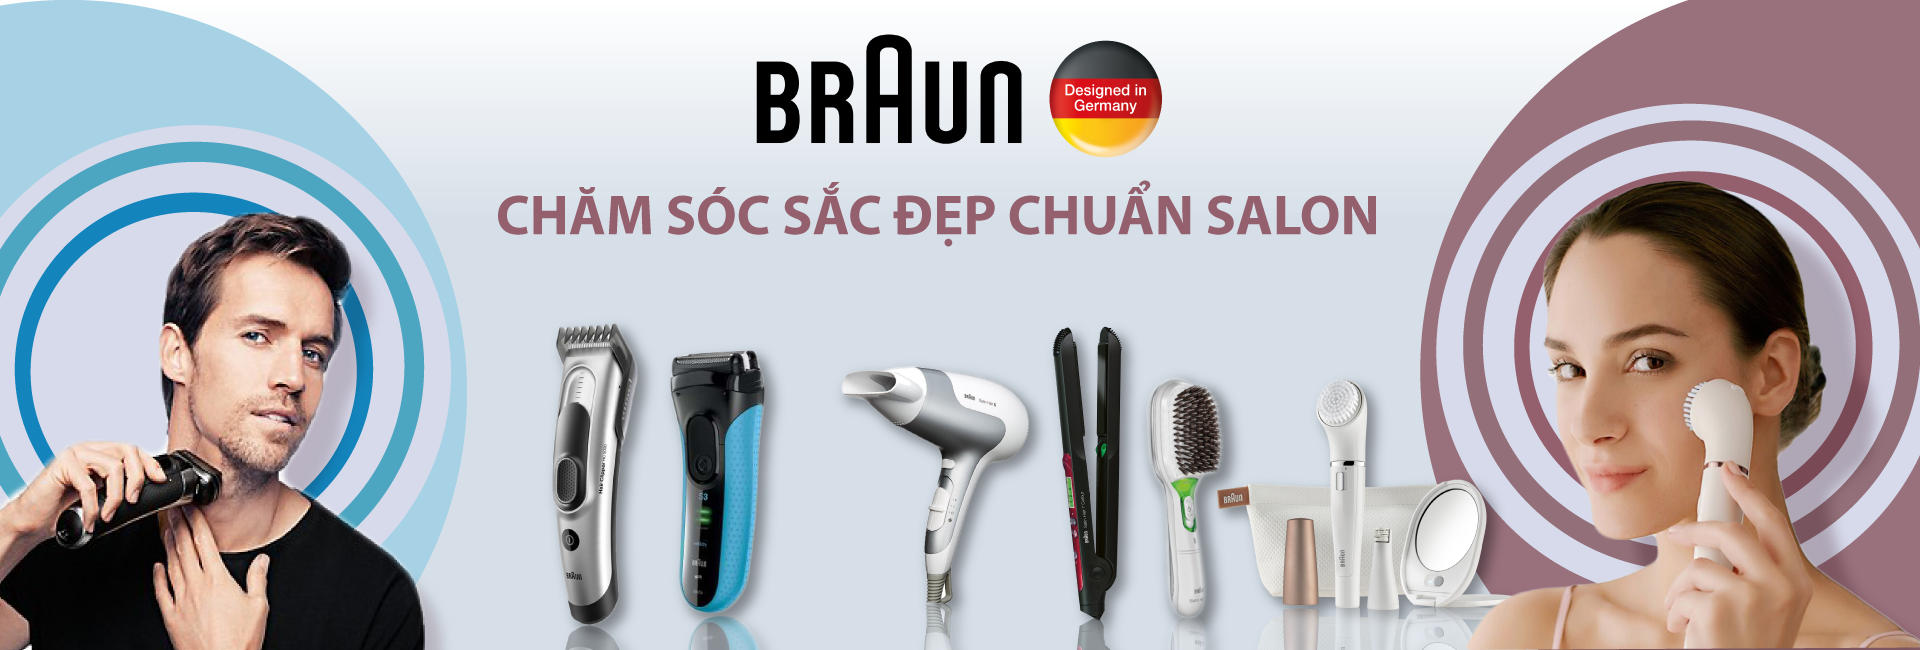 Braun-Beauty-Master